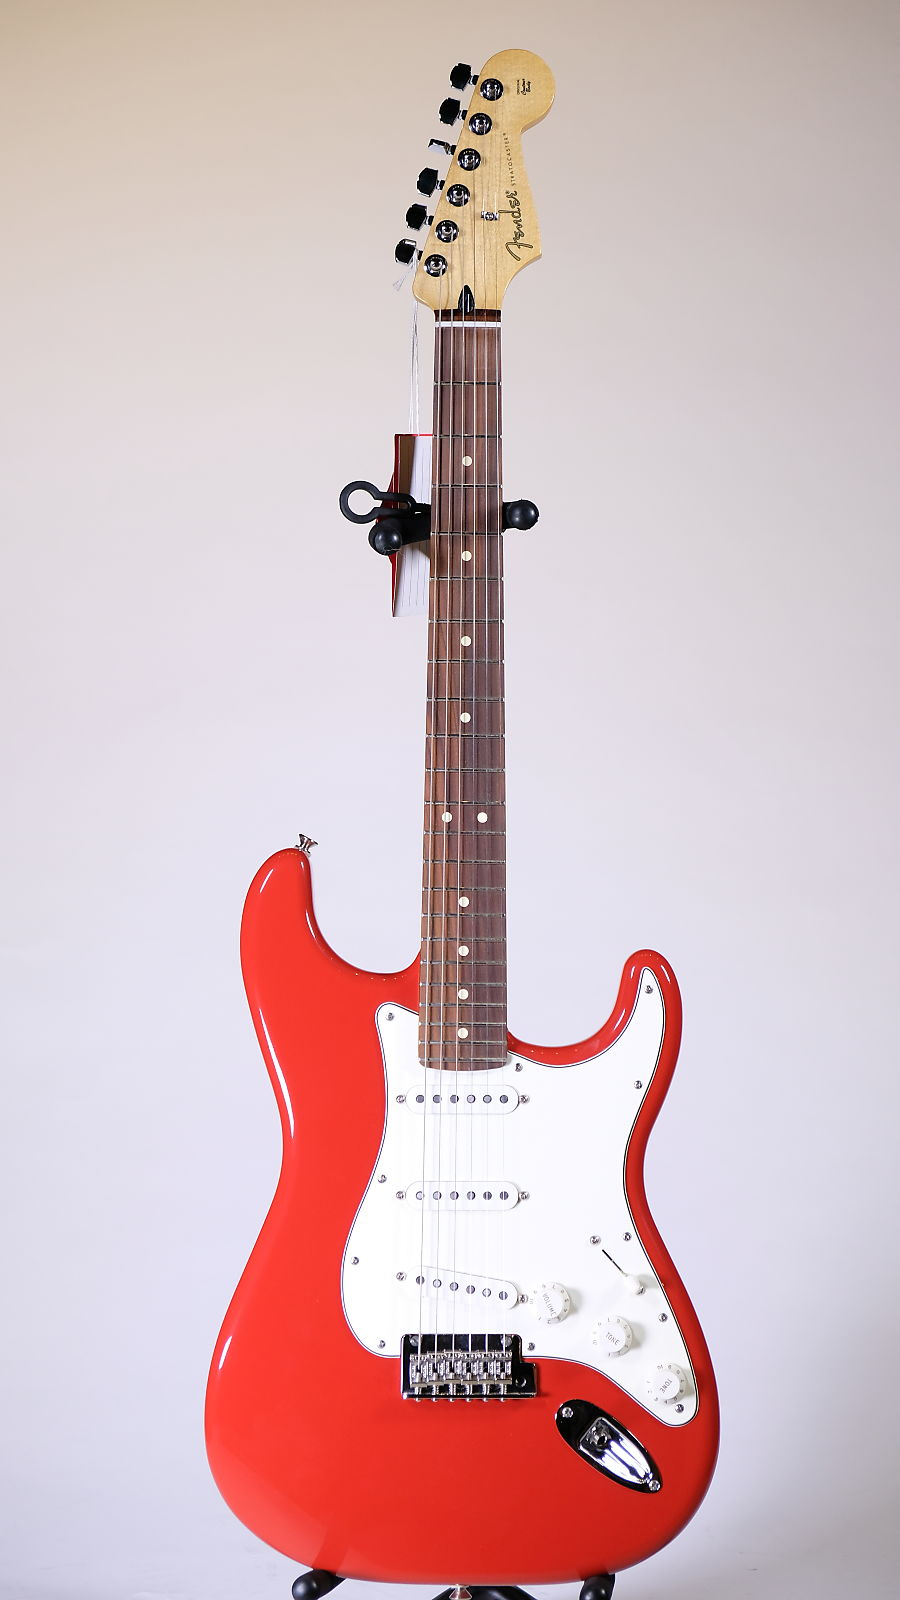 fender player stratocaster sonic red. Black Bedroom Furniture Sets. Home Design Ideas